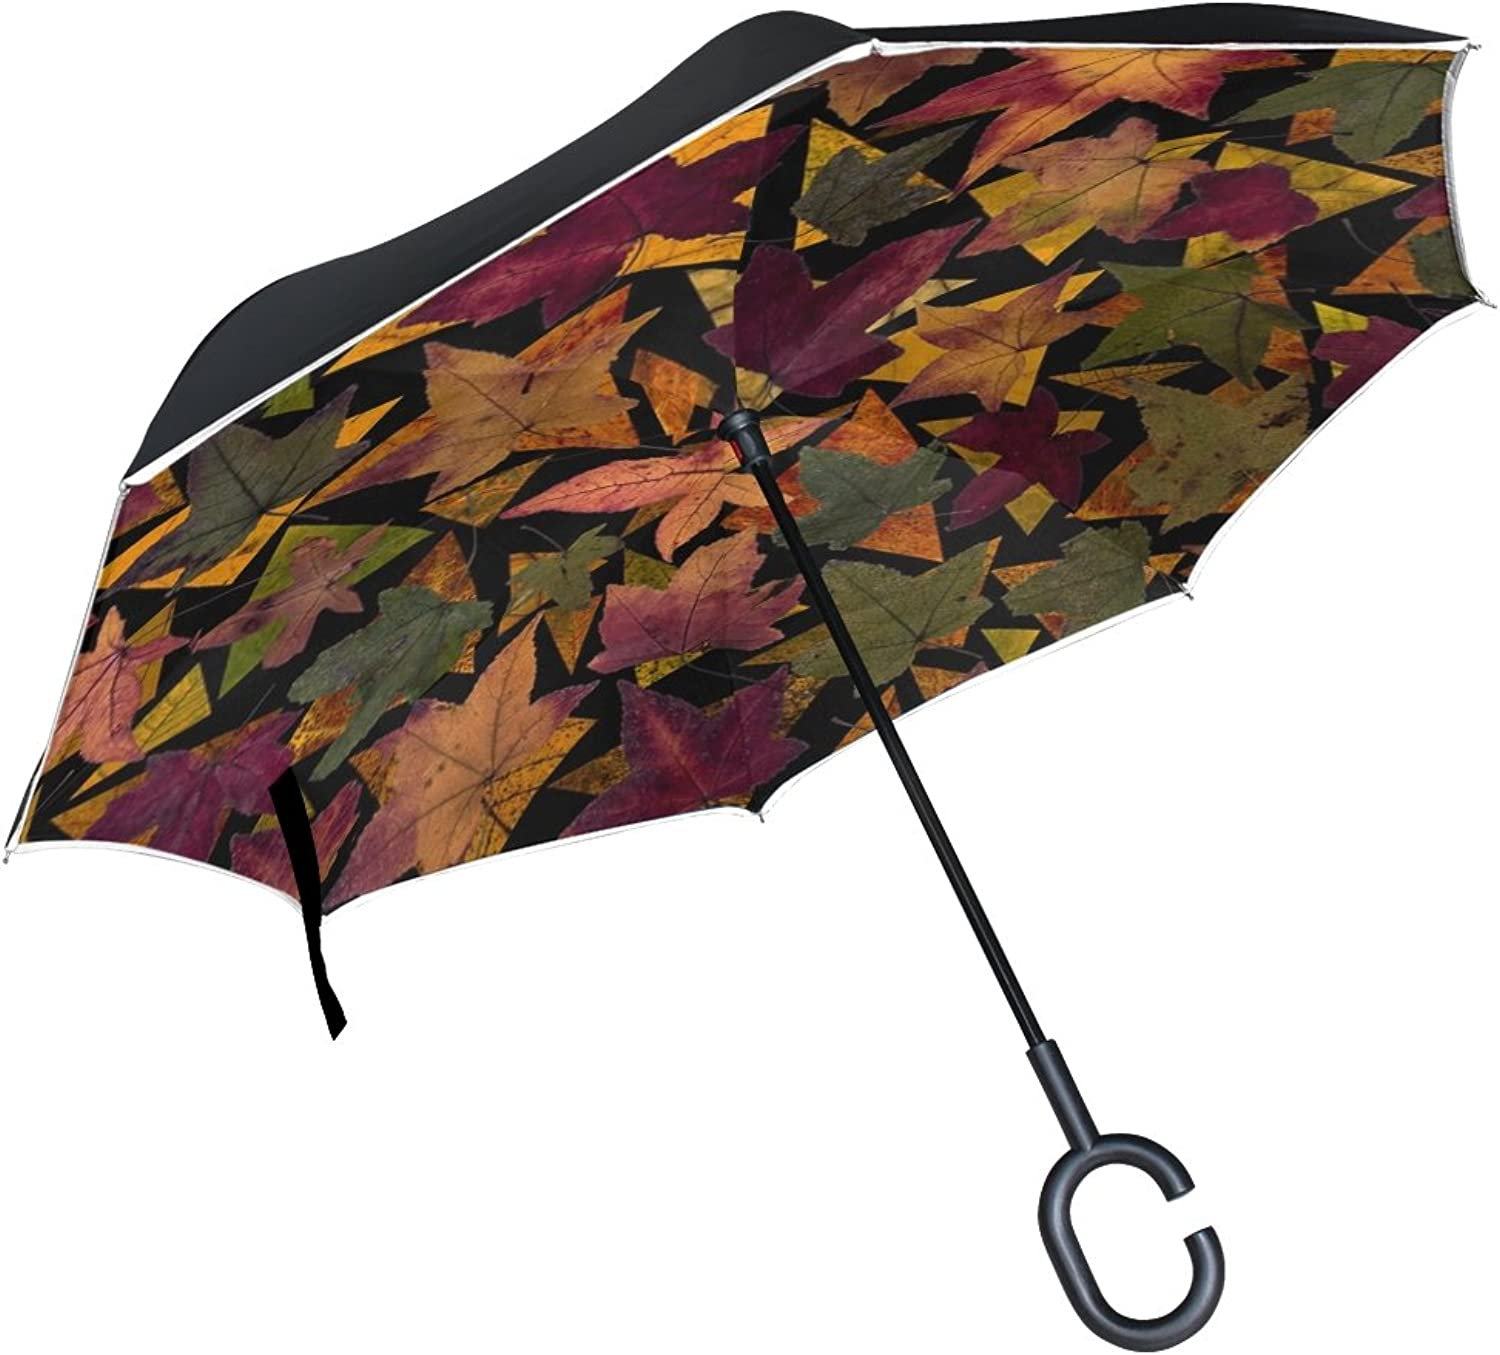 Double Layer Ingreened Leaves Tree Leaves Autumn Fall Leaves Composition Umbrellas Reverse Folding Umbrella Windproof Uv Predection Big Straight Umbrella for Car Rain Outdoor with CShaped Handle